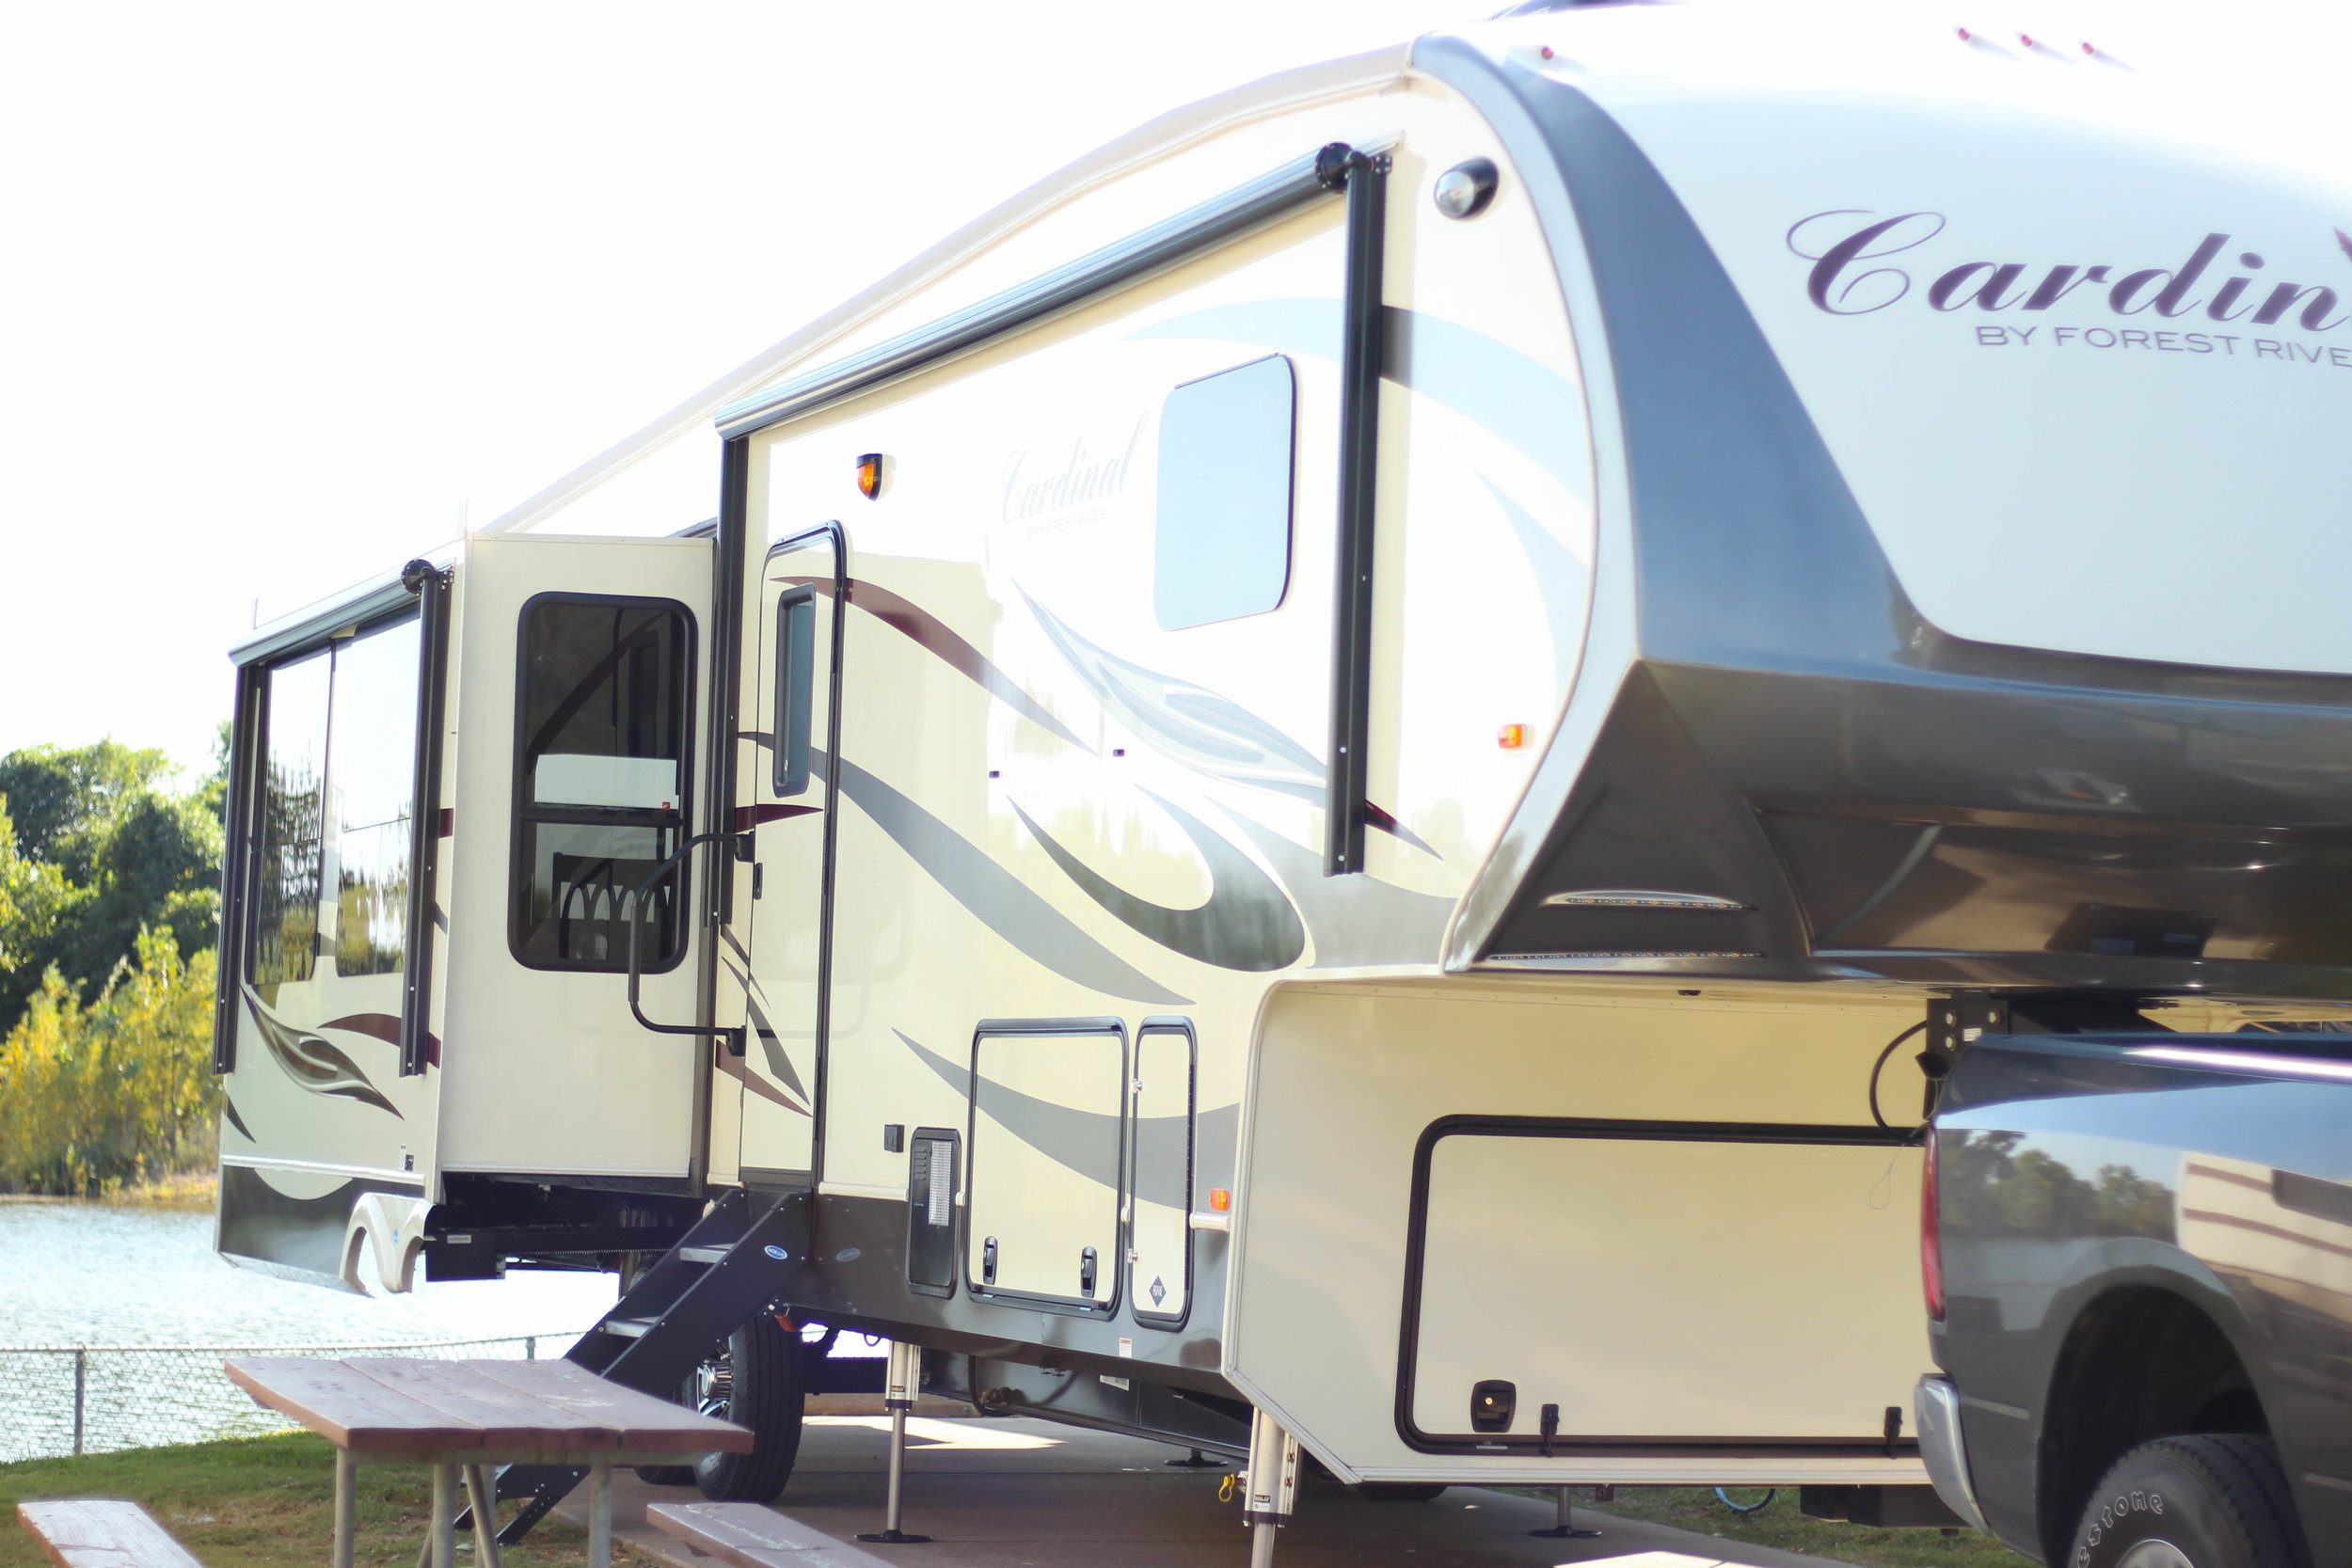 Thelma the Cardinal RV! We love the cardinal because not only is it cozy and comfortable inside but the name reminds us of Cardie.